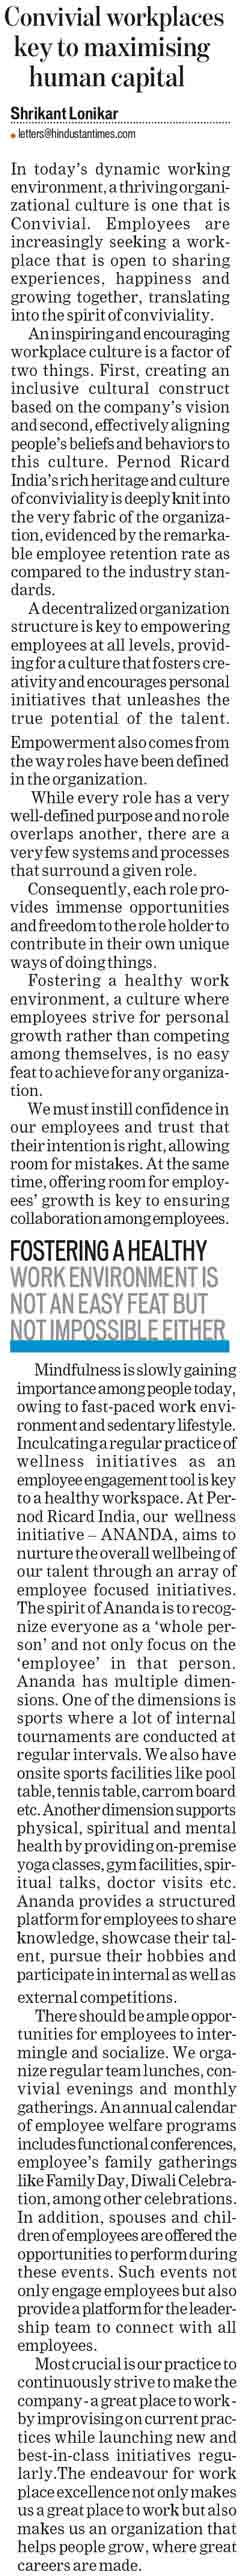 Convivial workplaces key to maximising human capital